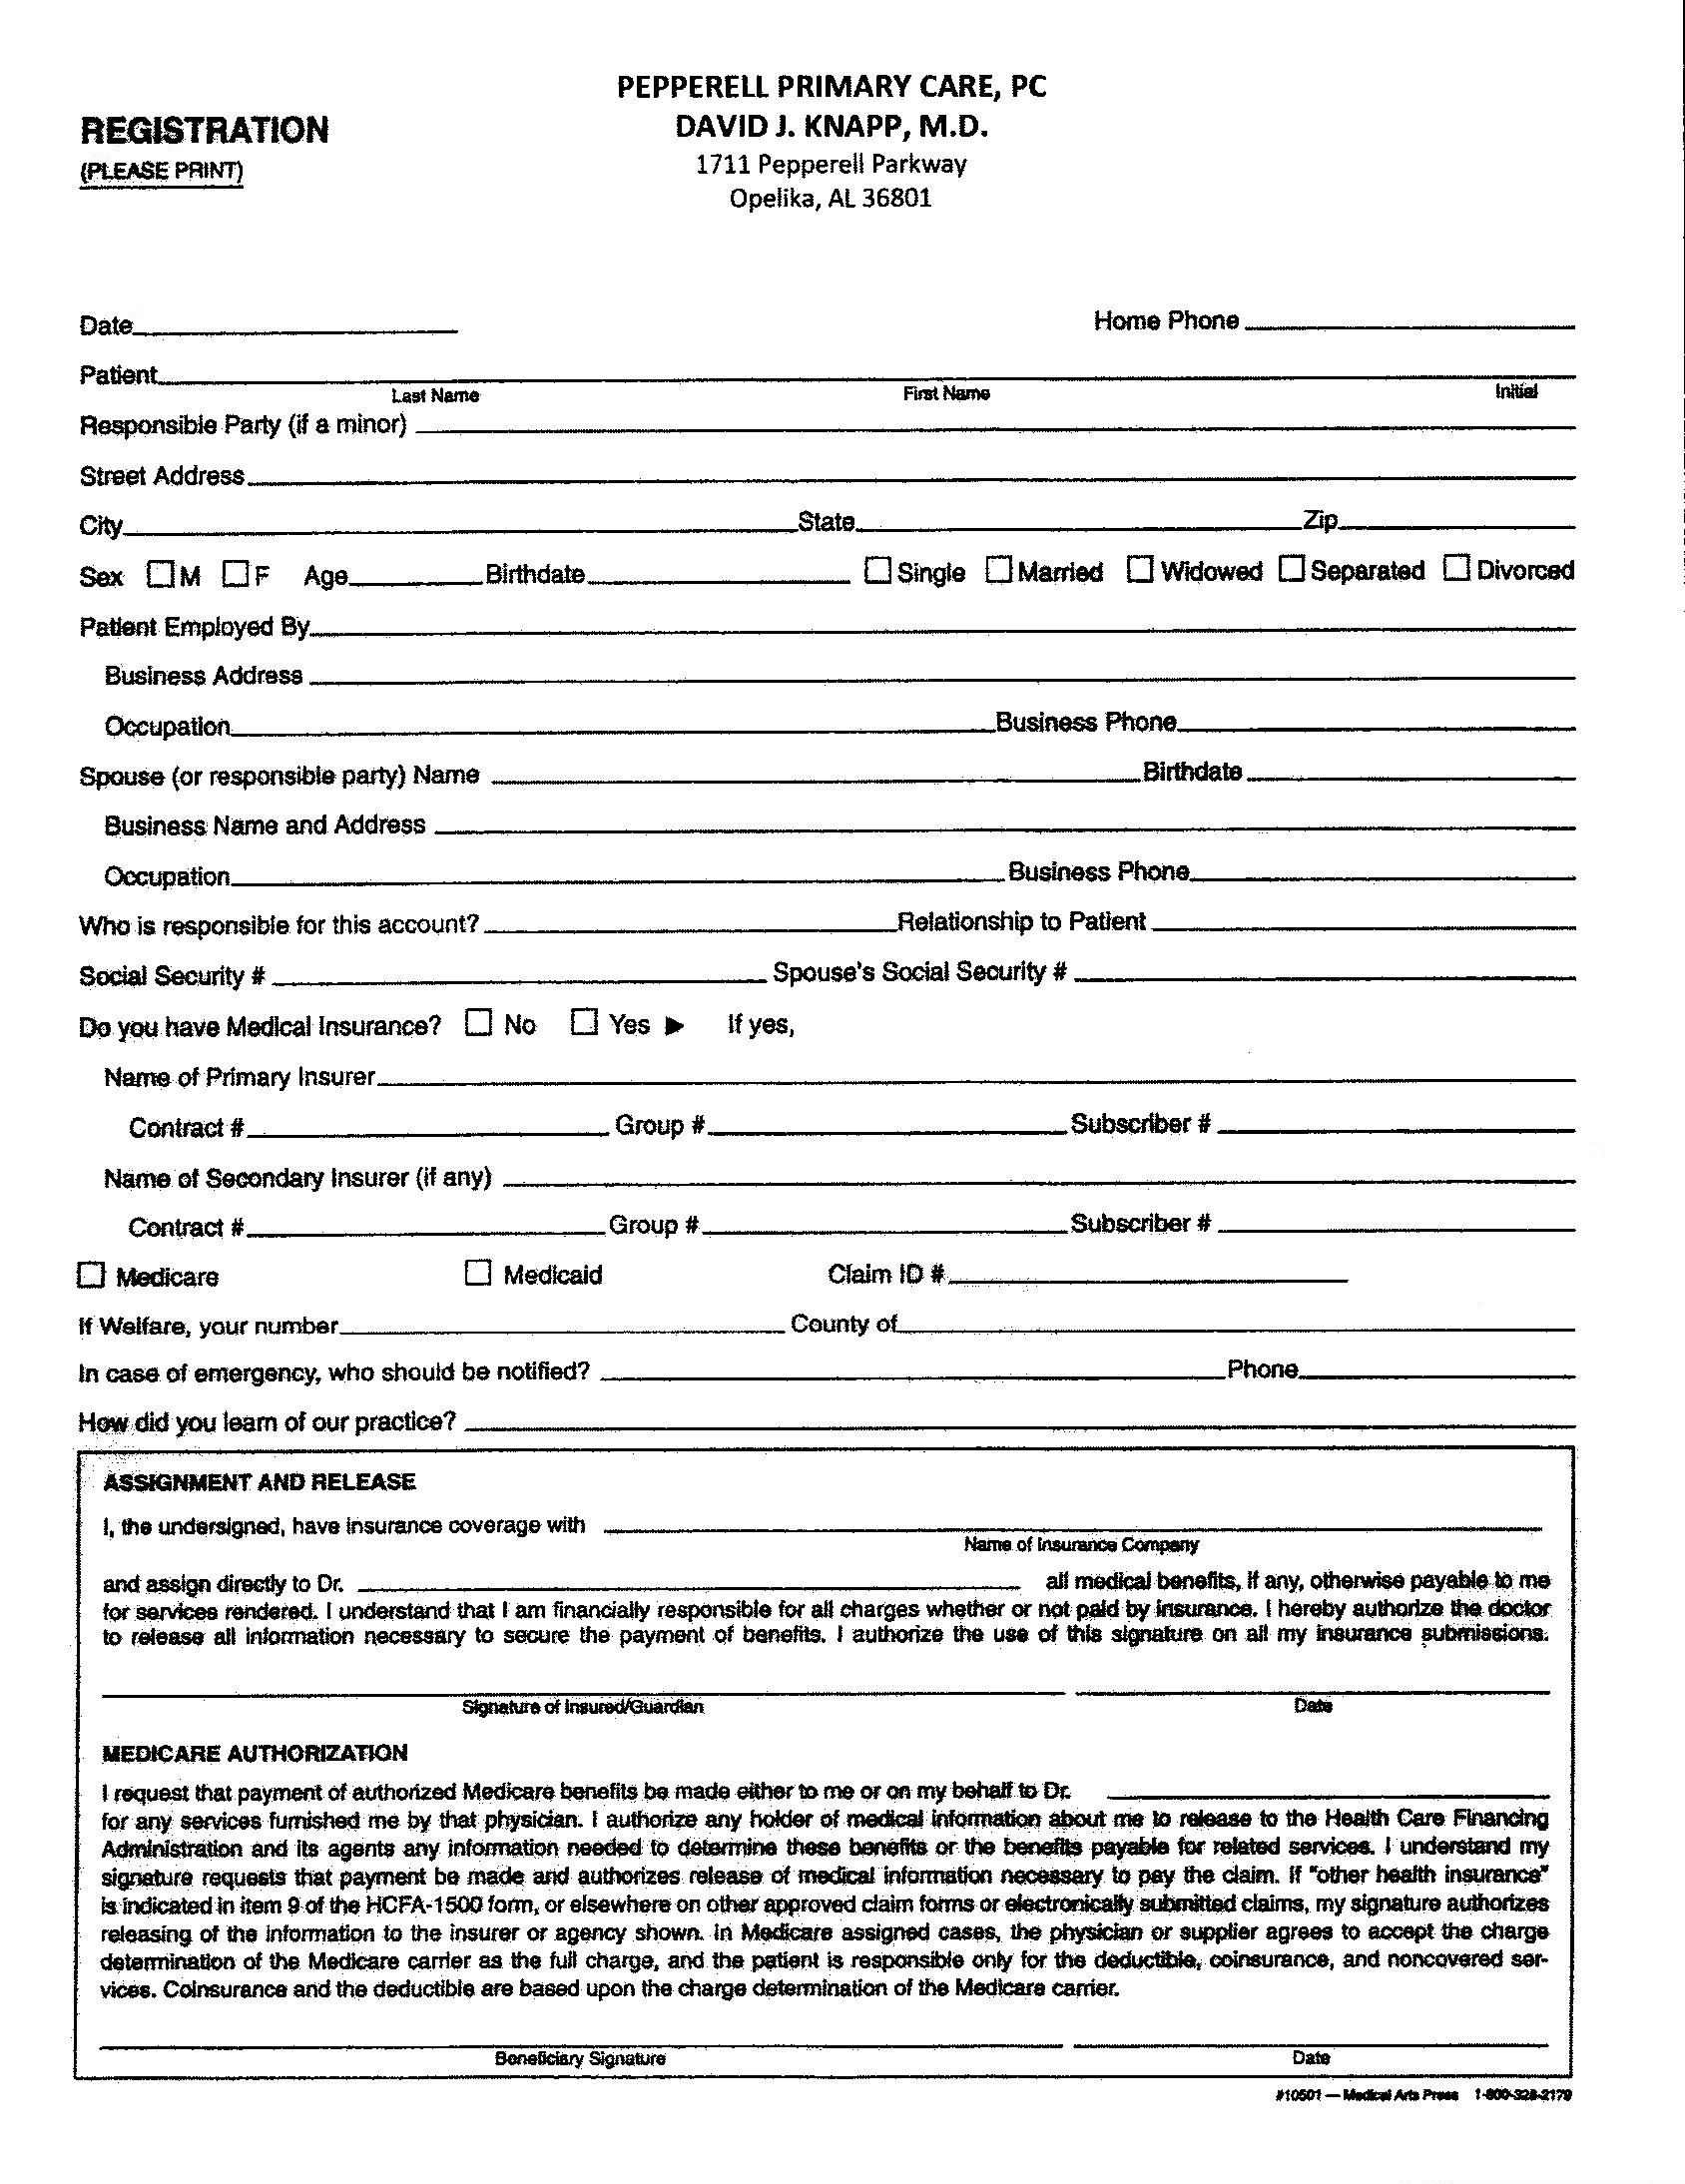 Registration Forms | David Knapp MD